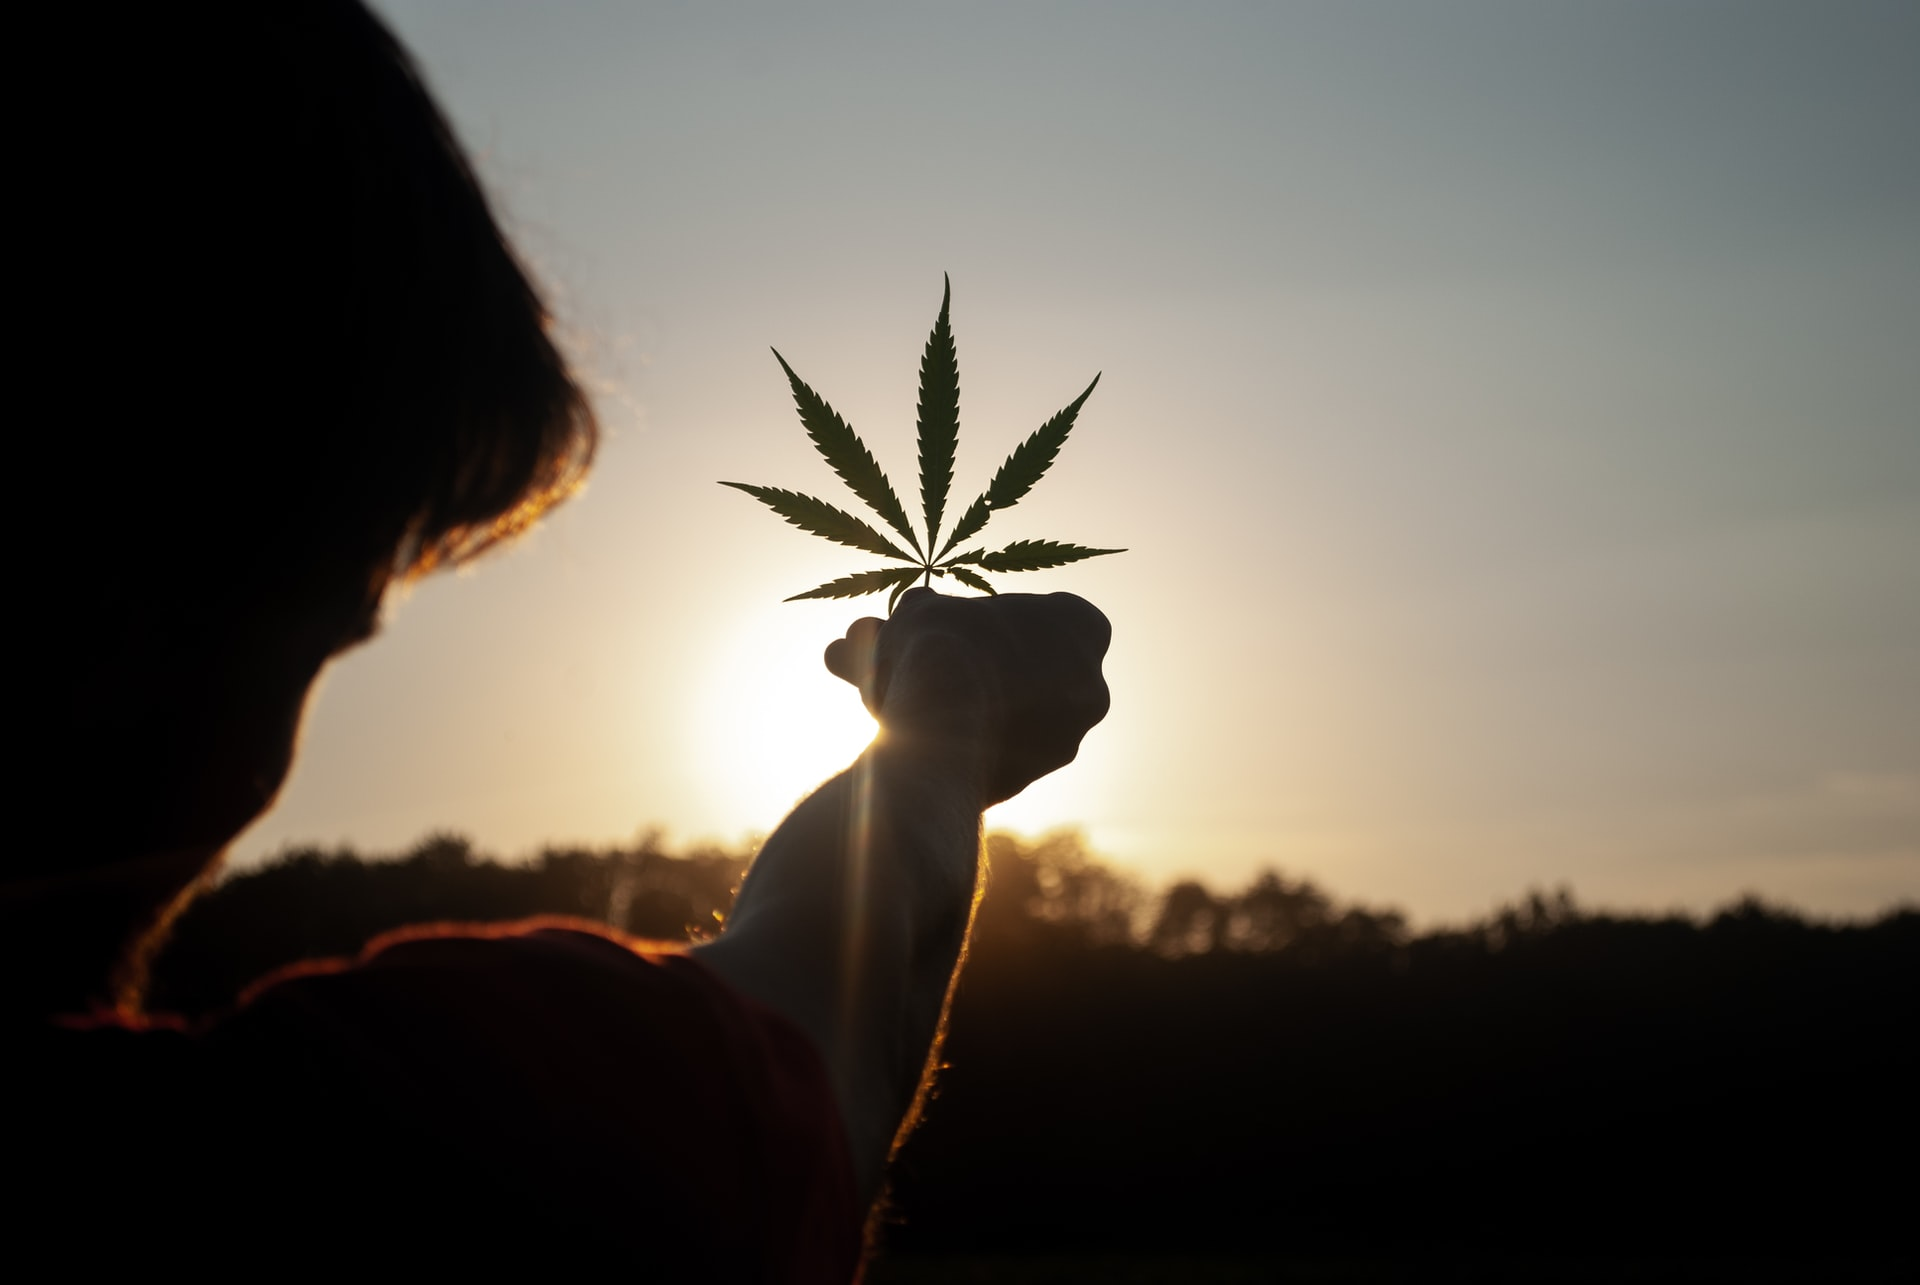 silhouette of person holding cannabis leaf to sky